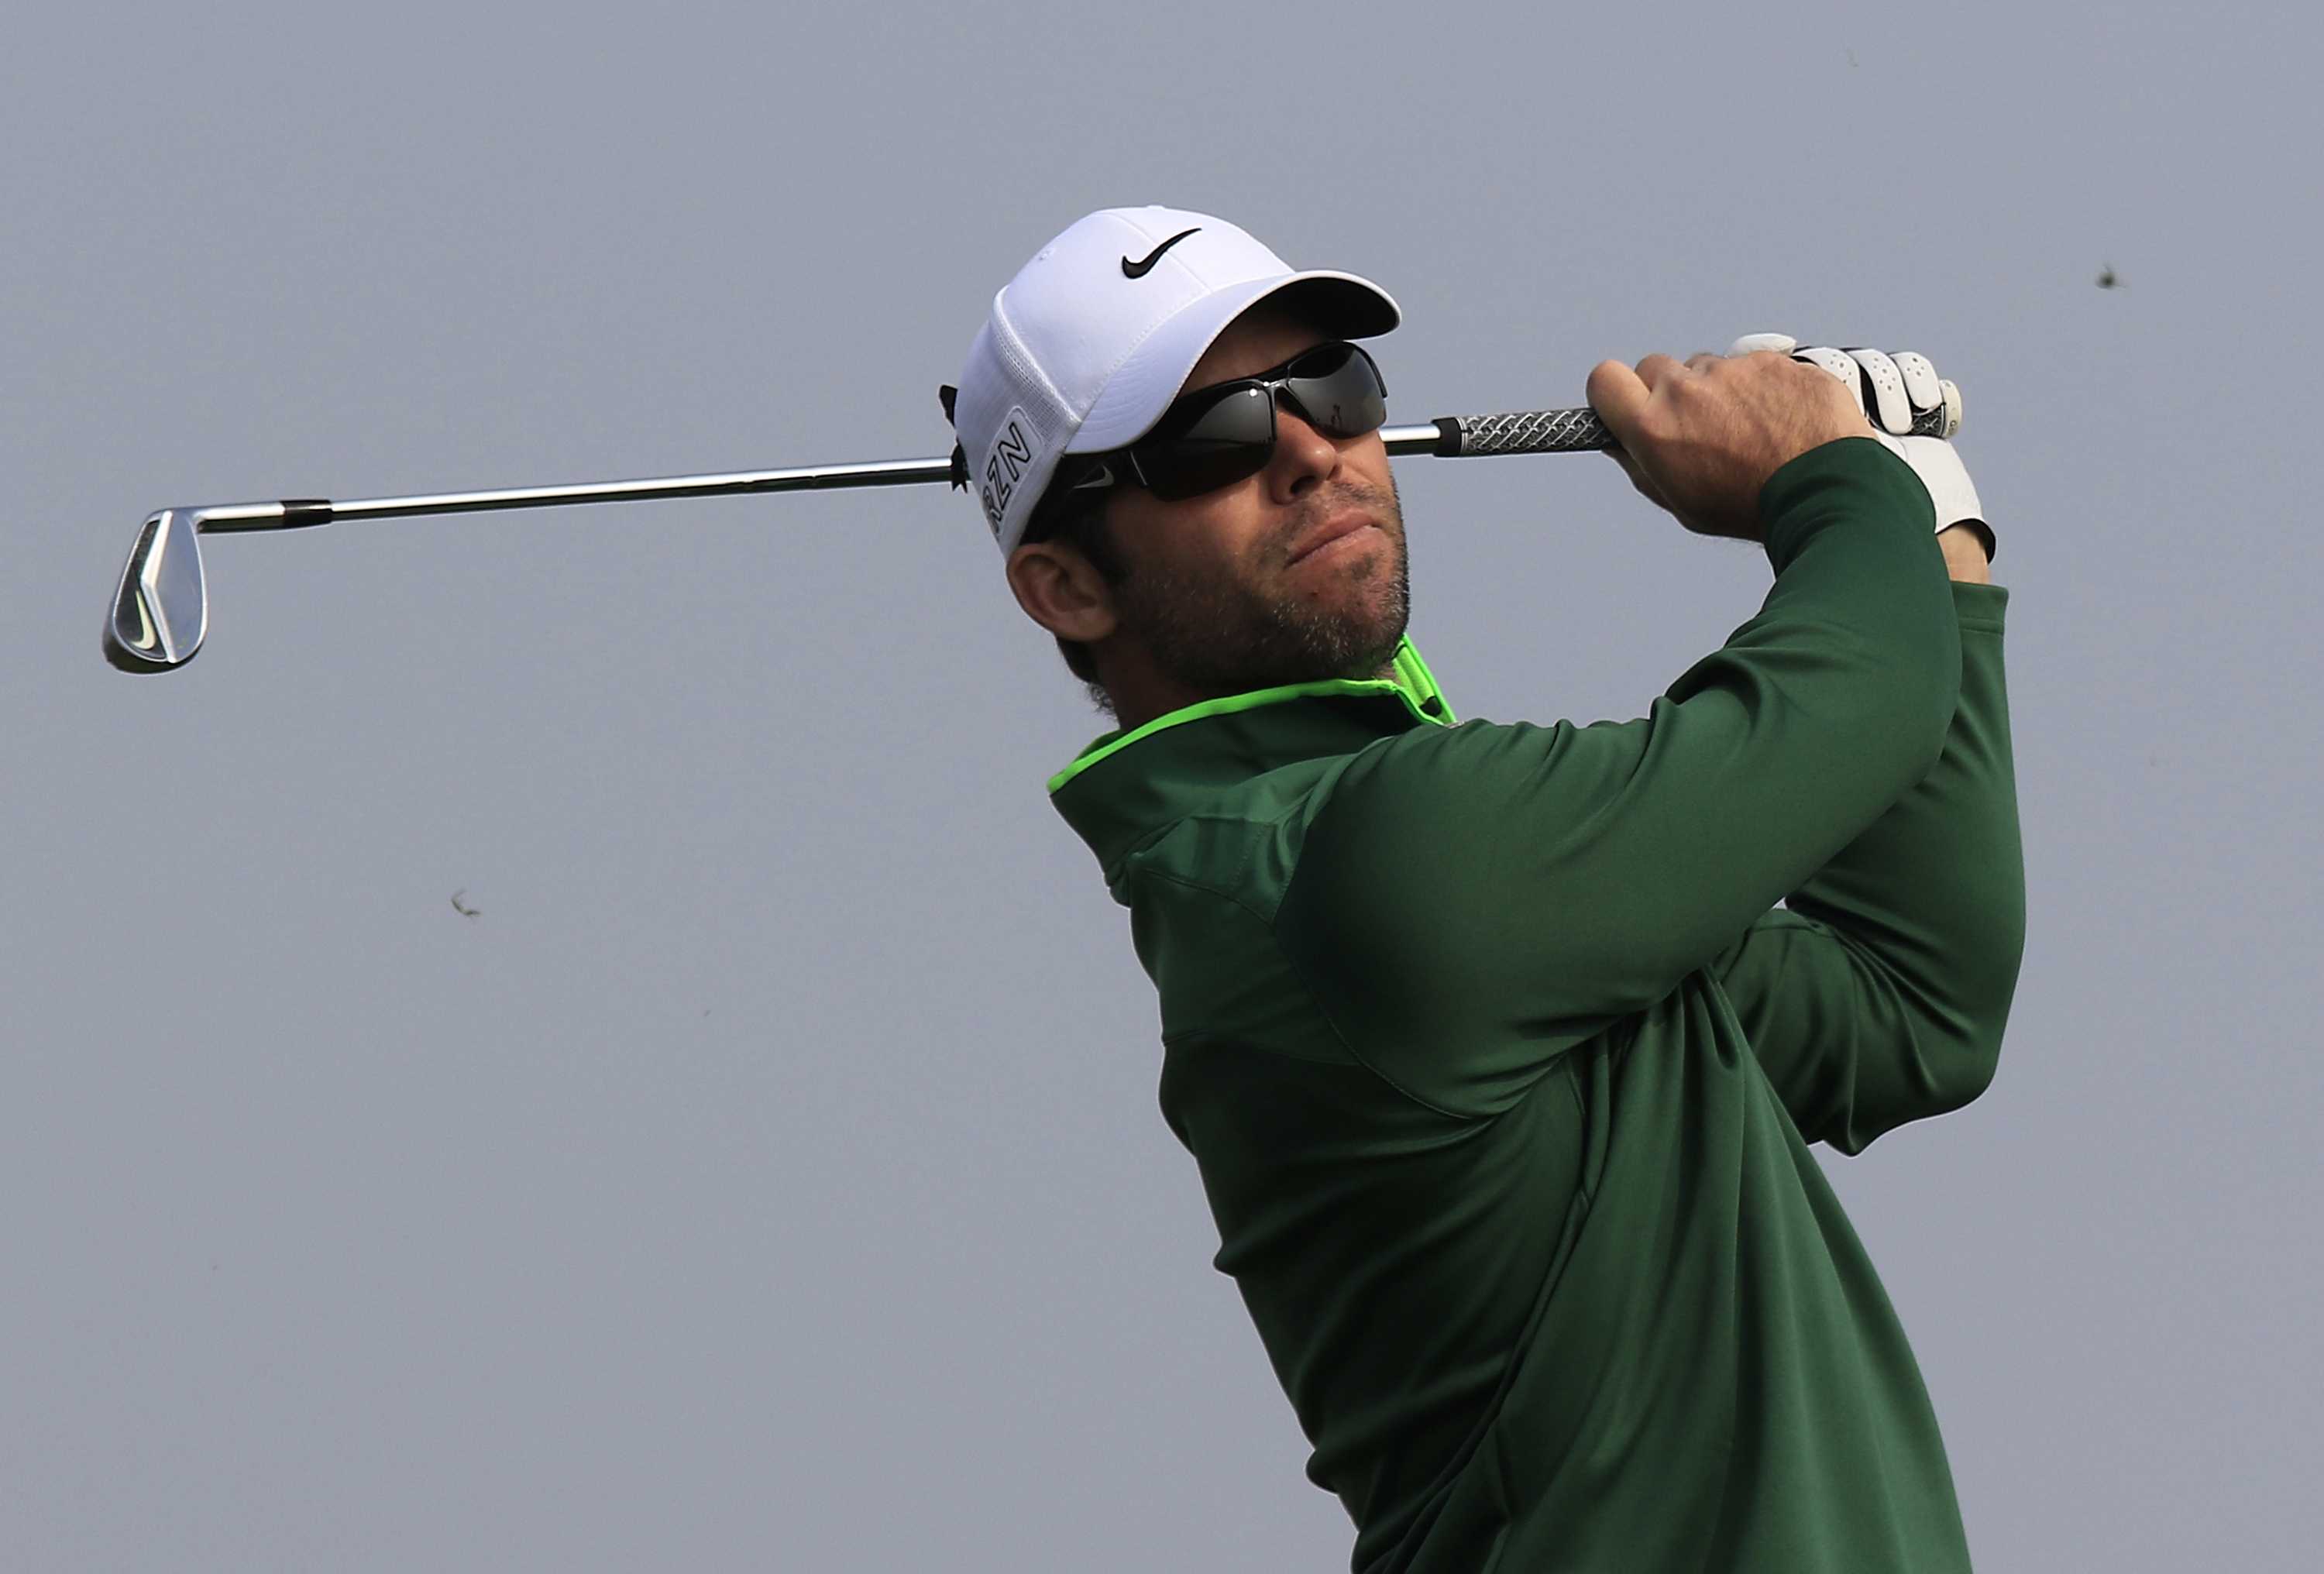 Paul Casey of England watches his tees on the 6th hole during the third round of the BMW Masters golf tournament at the Lake Malaren Golf Club in Shanghai, China, Saturday, Nov. 14, 2015. (AP Photo)